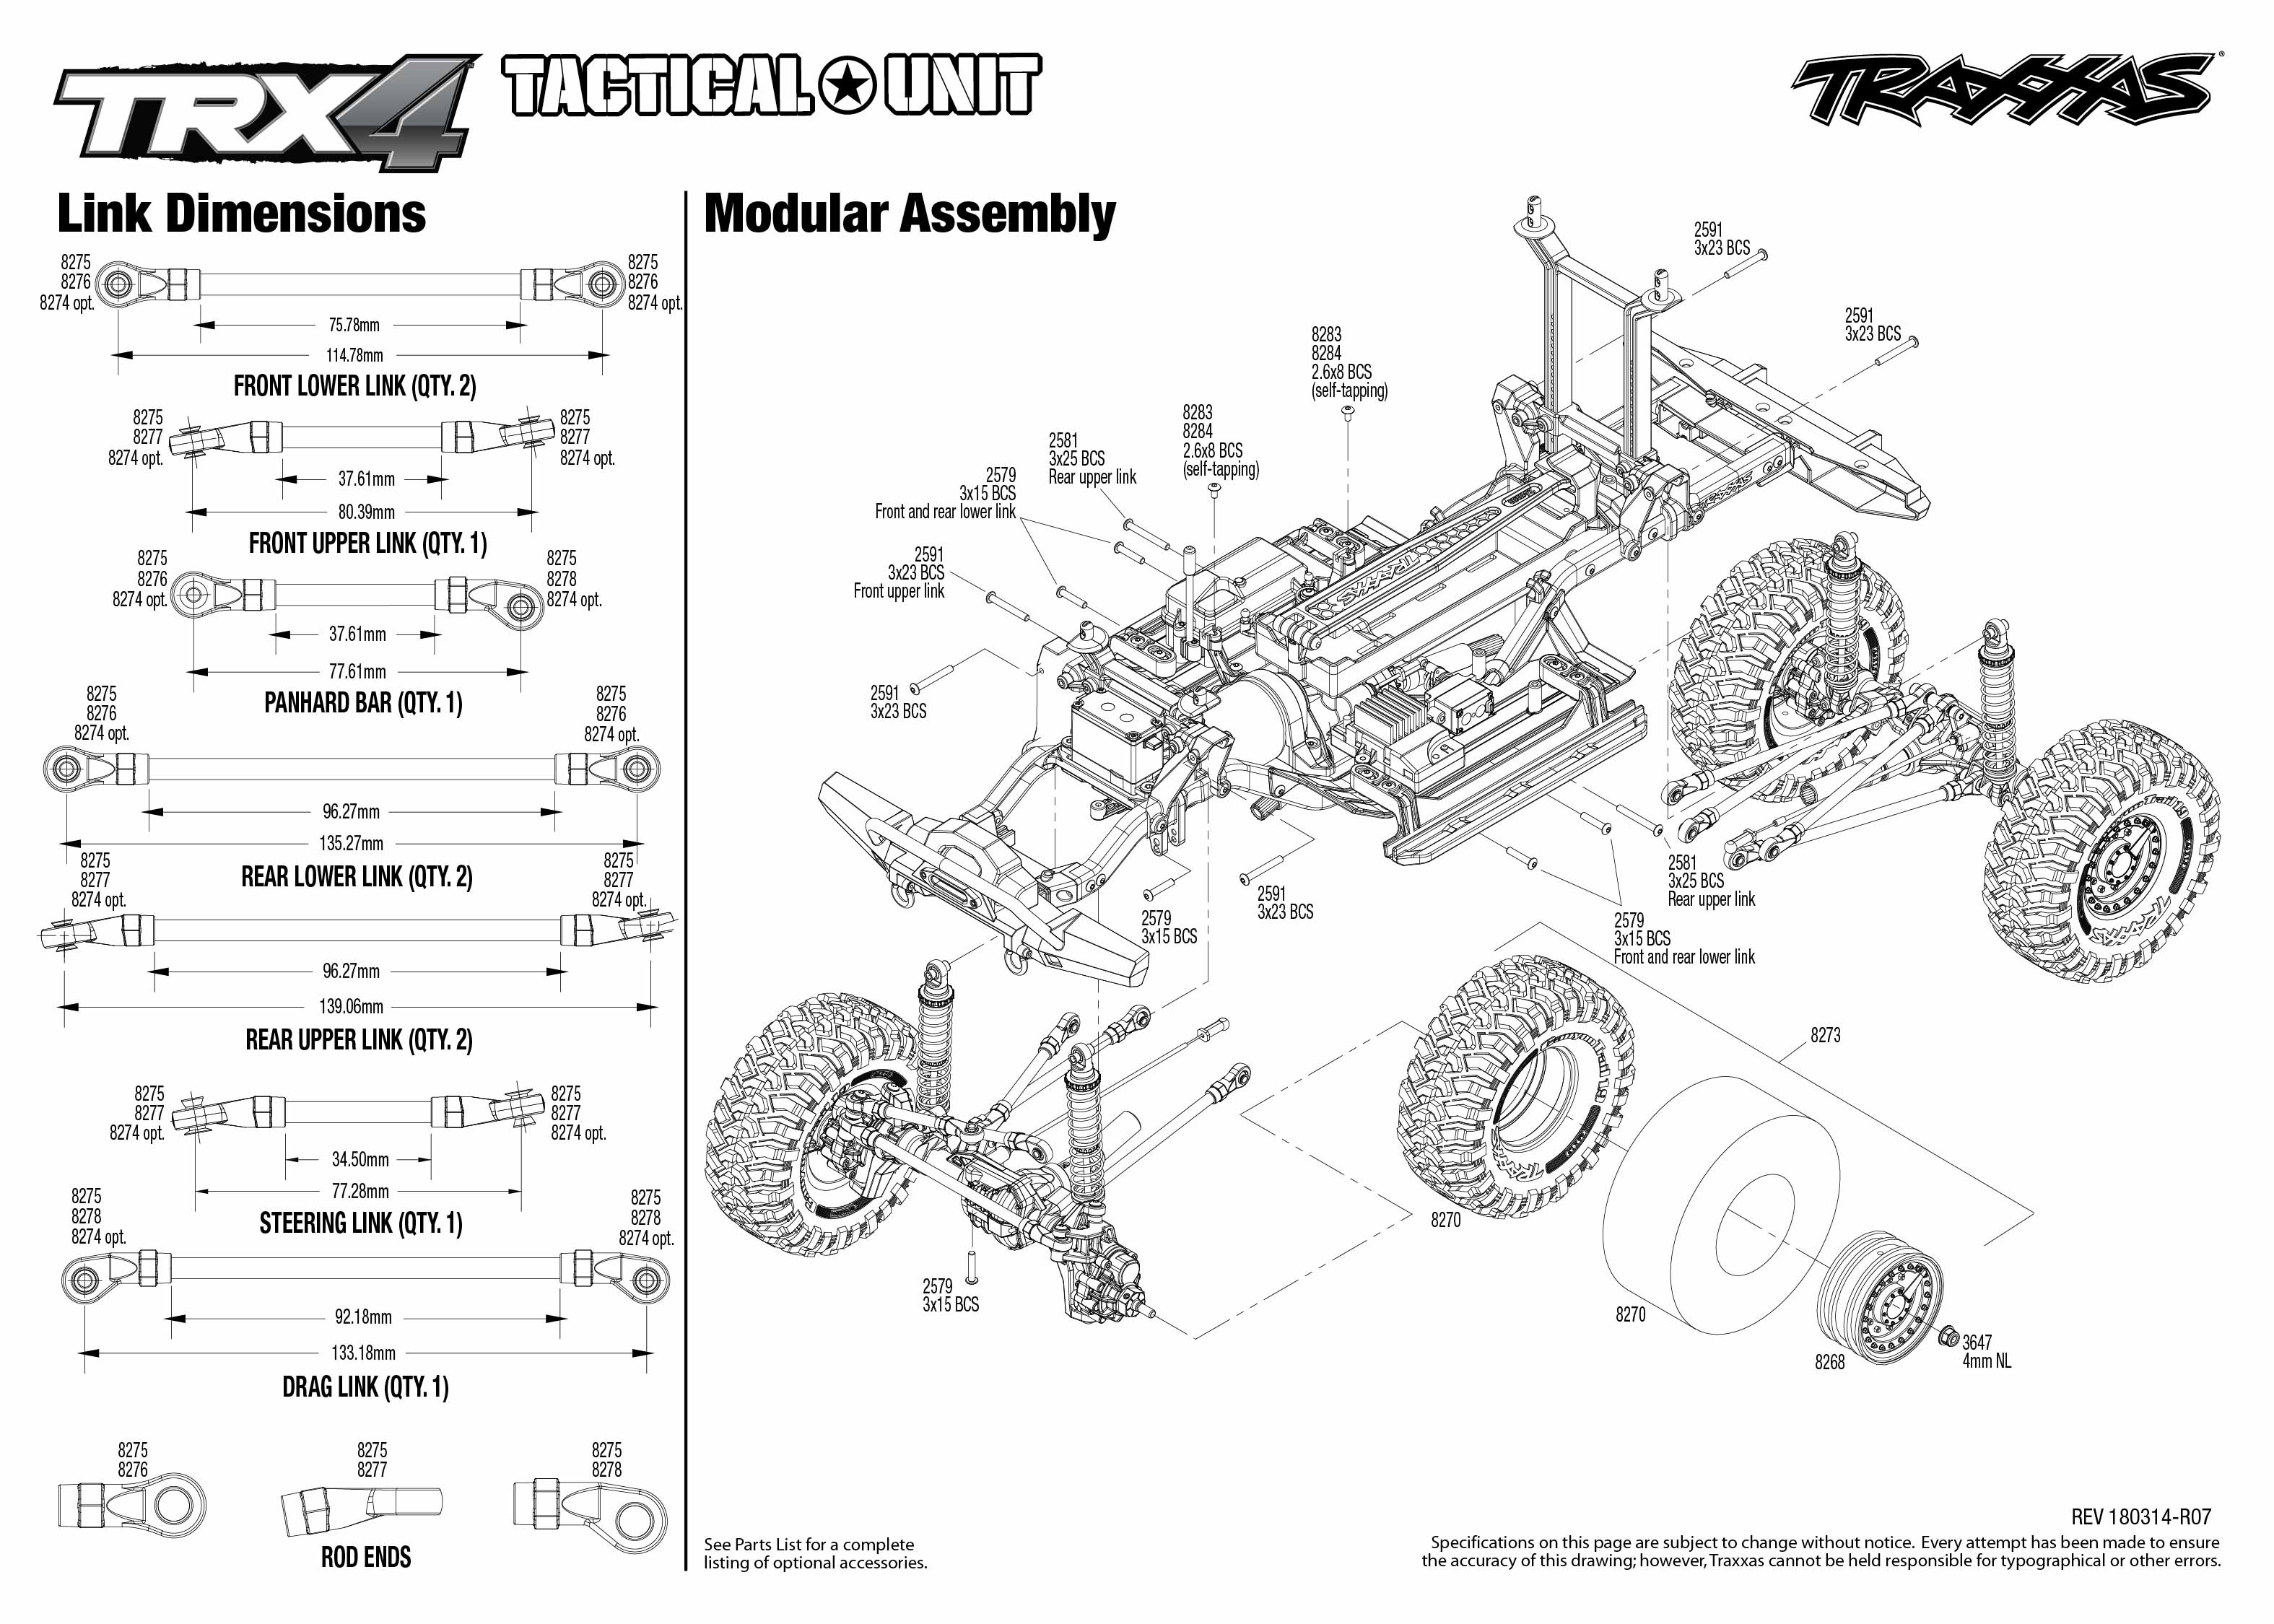 Trx 4 Tactical Unit 4 Modular Assembly Exploded